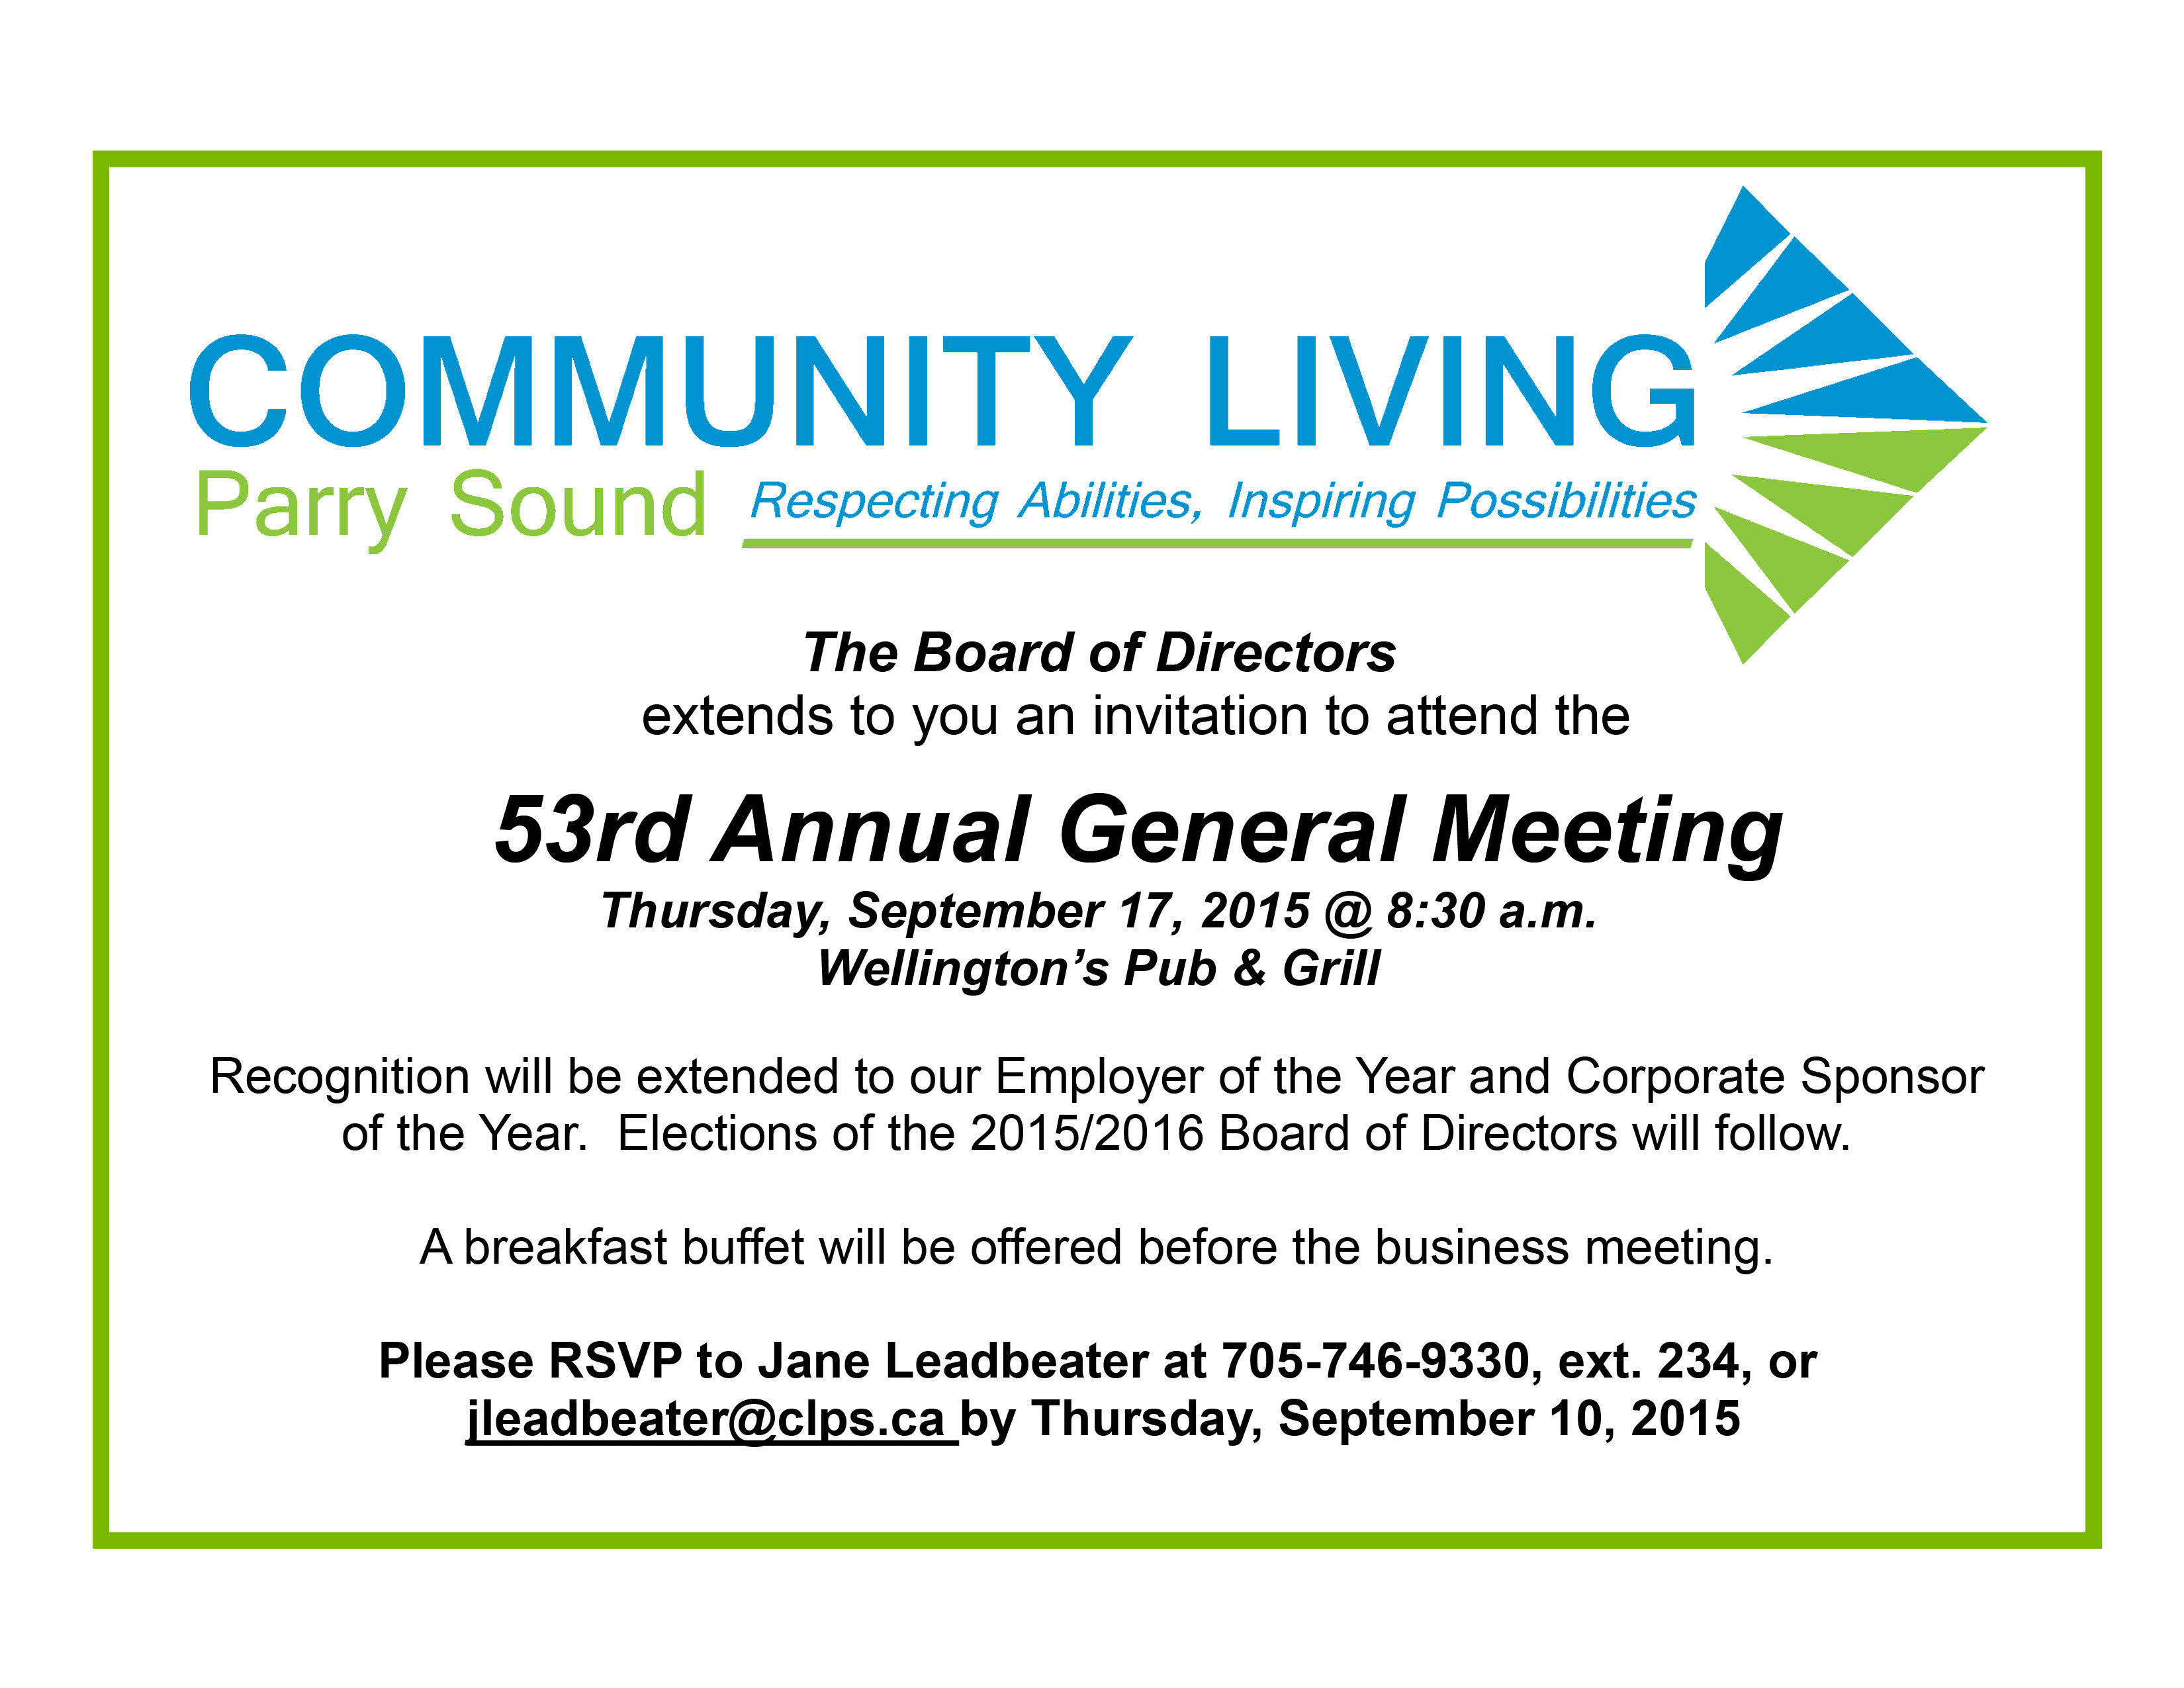 Agm invitation website september 17 20151 community living agm invitation website september 17 20151 stopboris Gallery